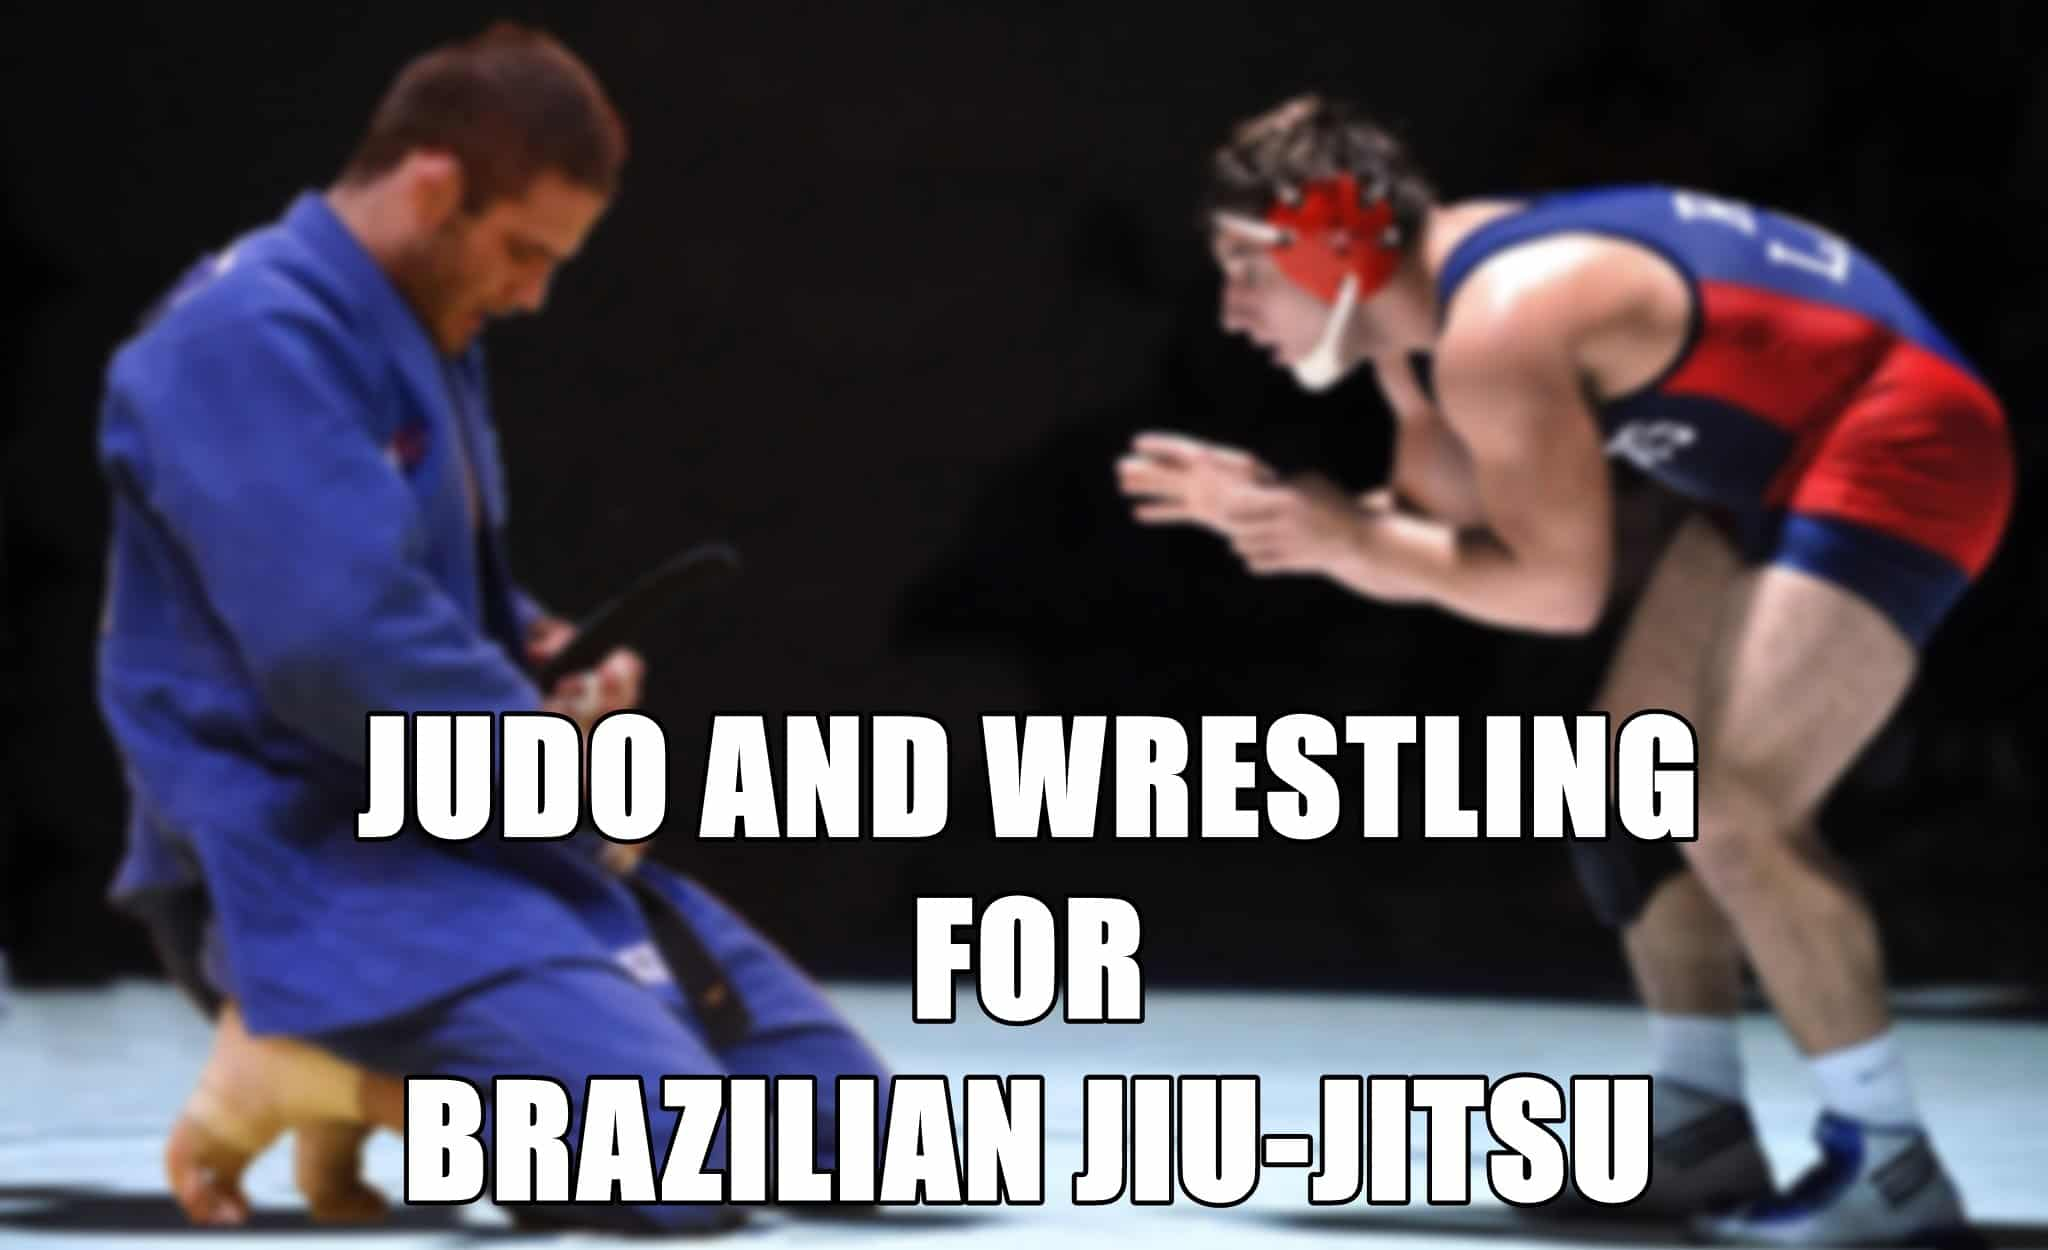 Judo and Wrestling for Brazilian Jiu-Jitsu